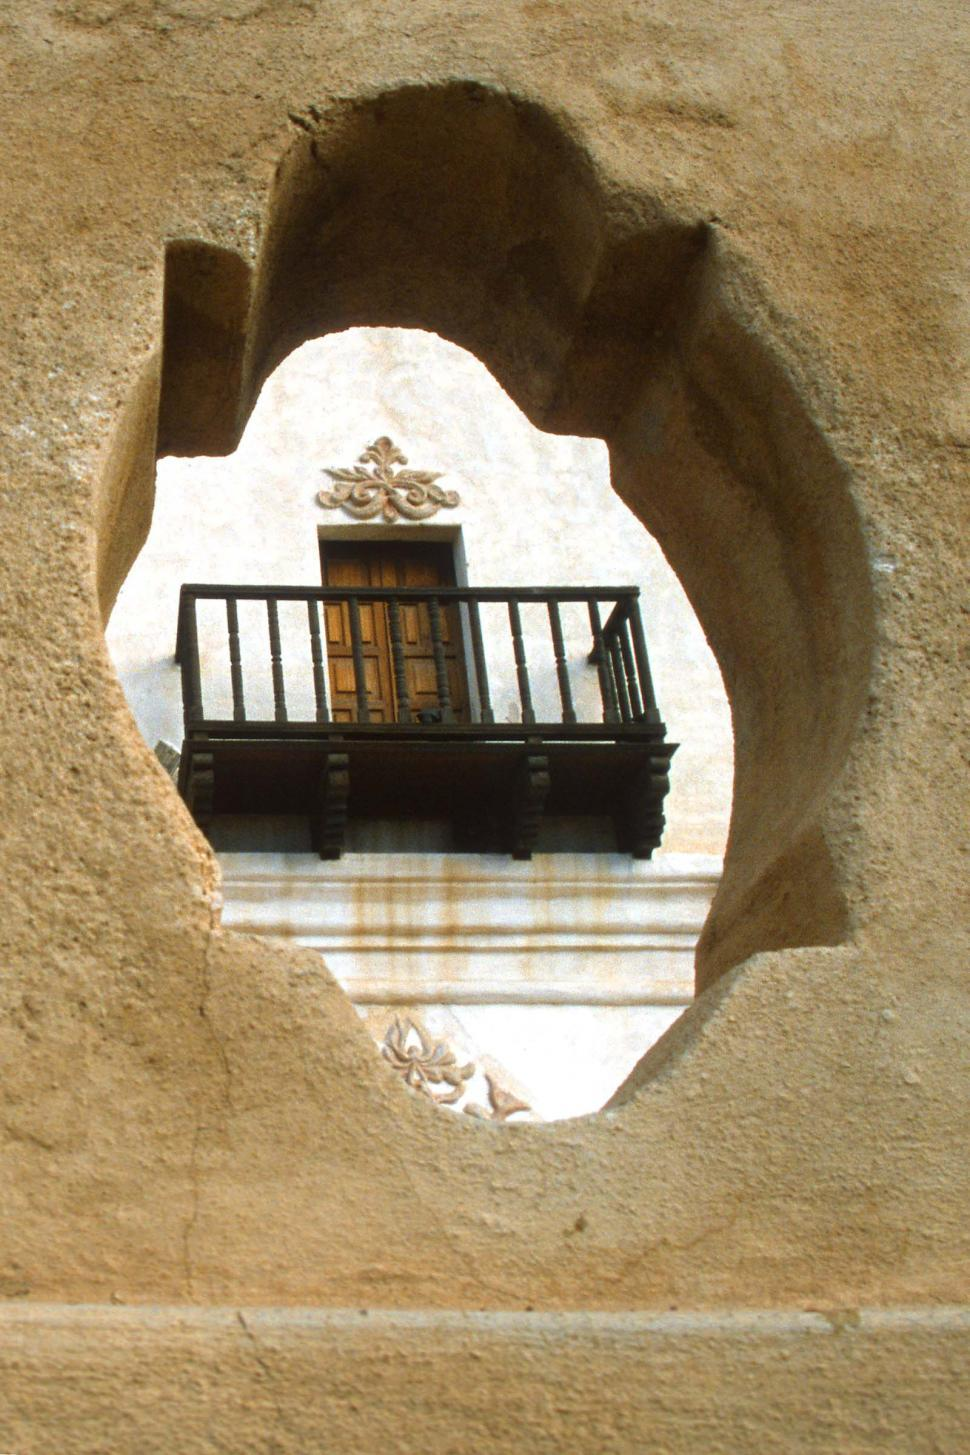 Download Free Stock HD Photo of Balcony at San Xavier del Bac Online